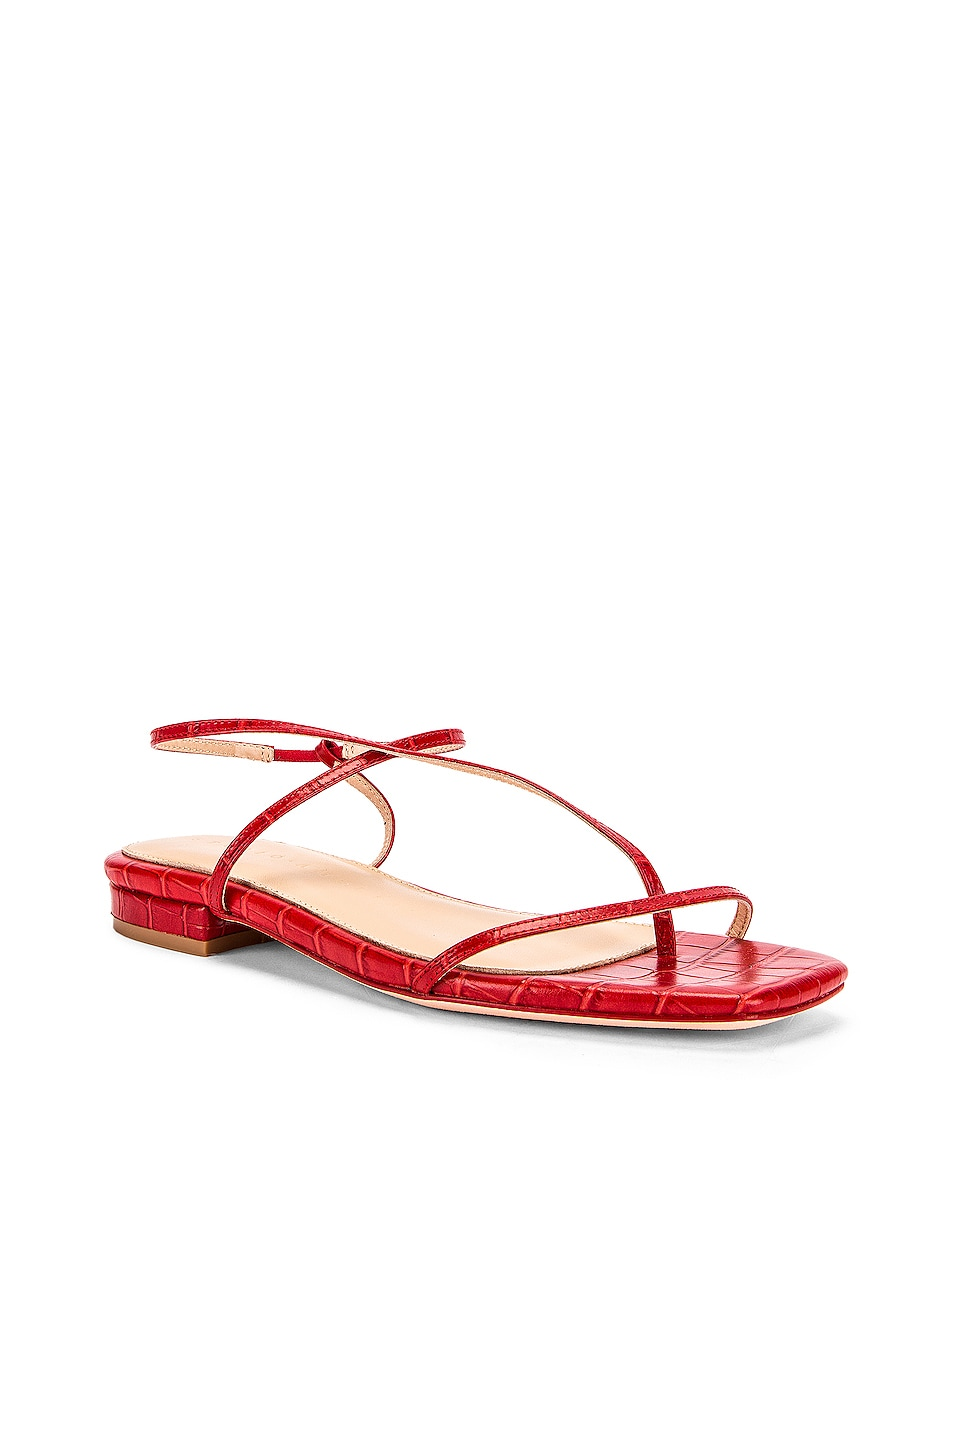 Image 2 of Studio Amelia 1.2 Sandal in Red Croc